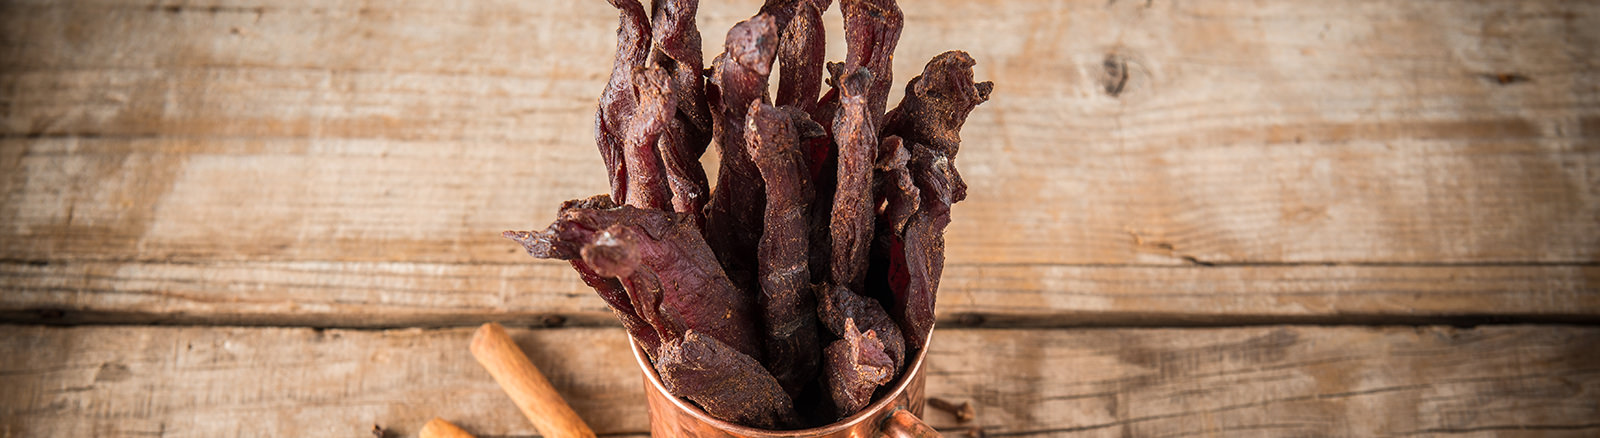 Traeger Wood Fire Grills - Venison Holiday Jerky